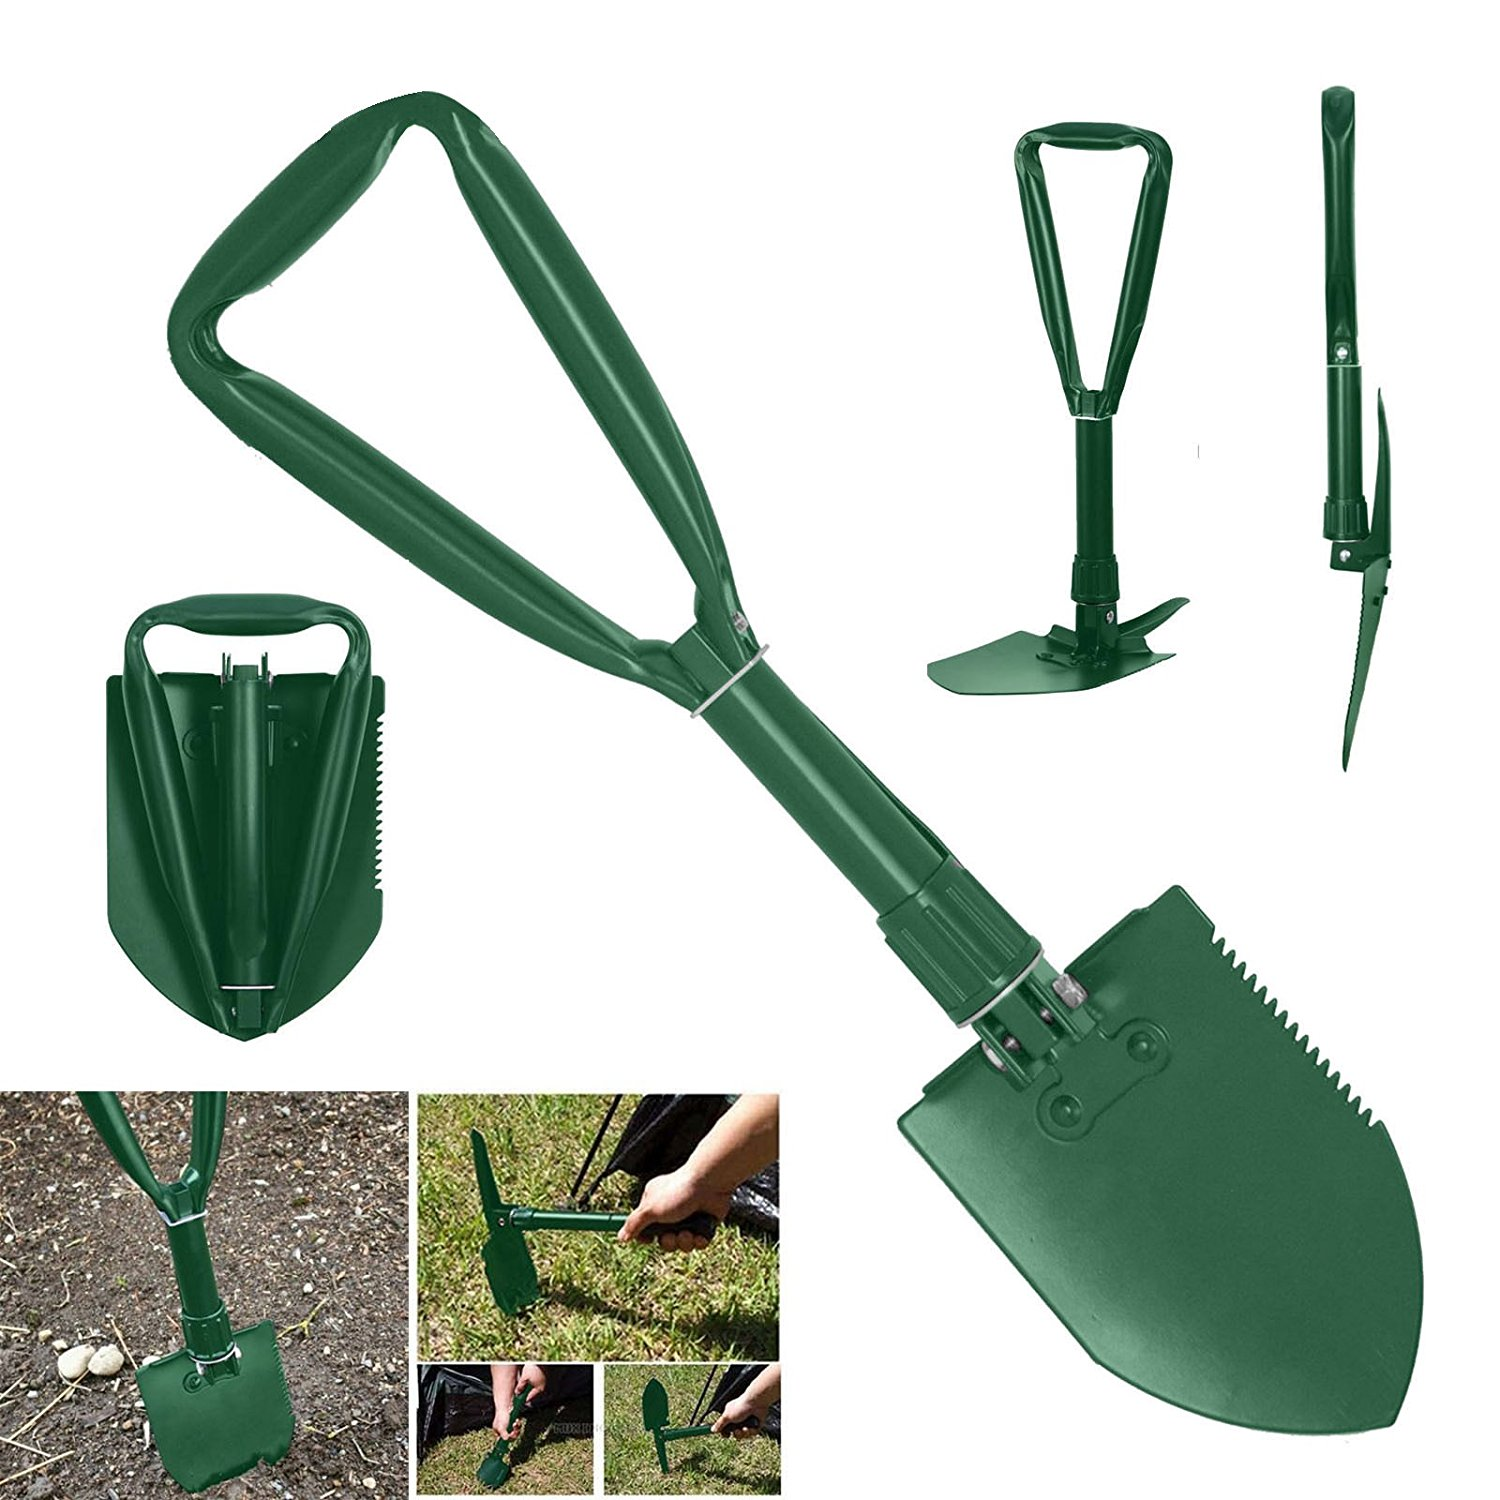 Folding Shovel Multi-Tool Knife Case Camping Hunting Survival Compact Tool by